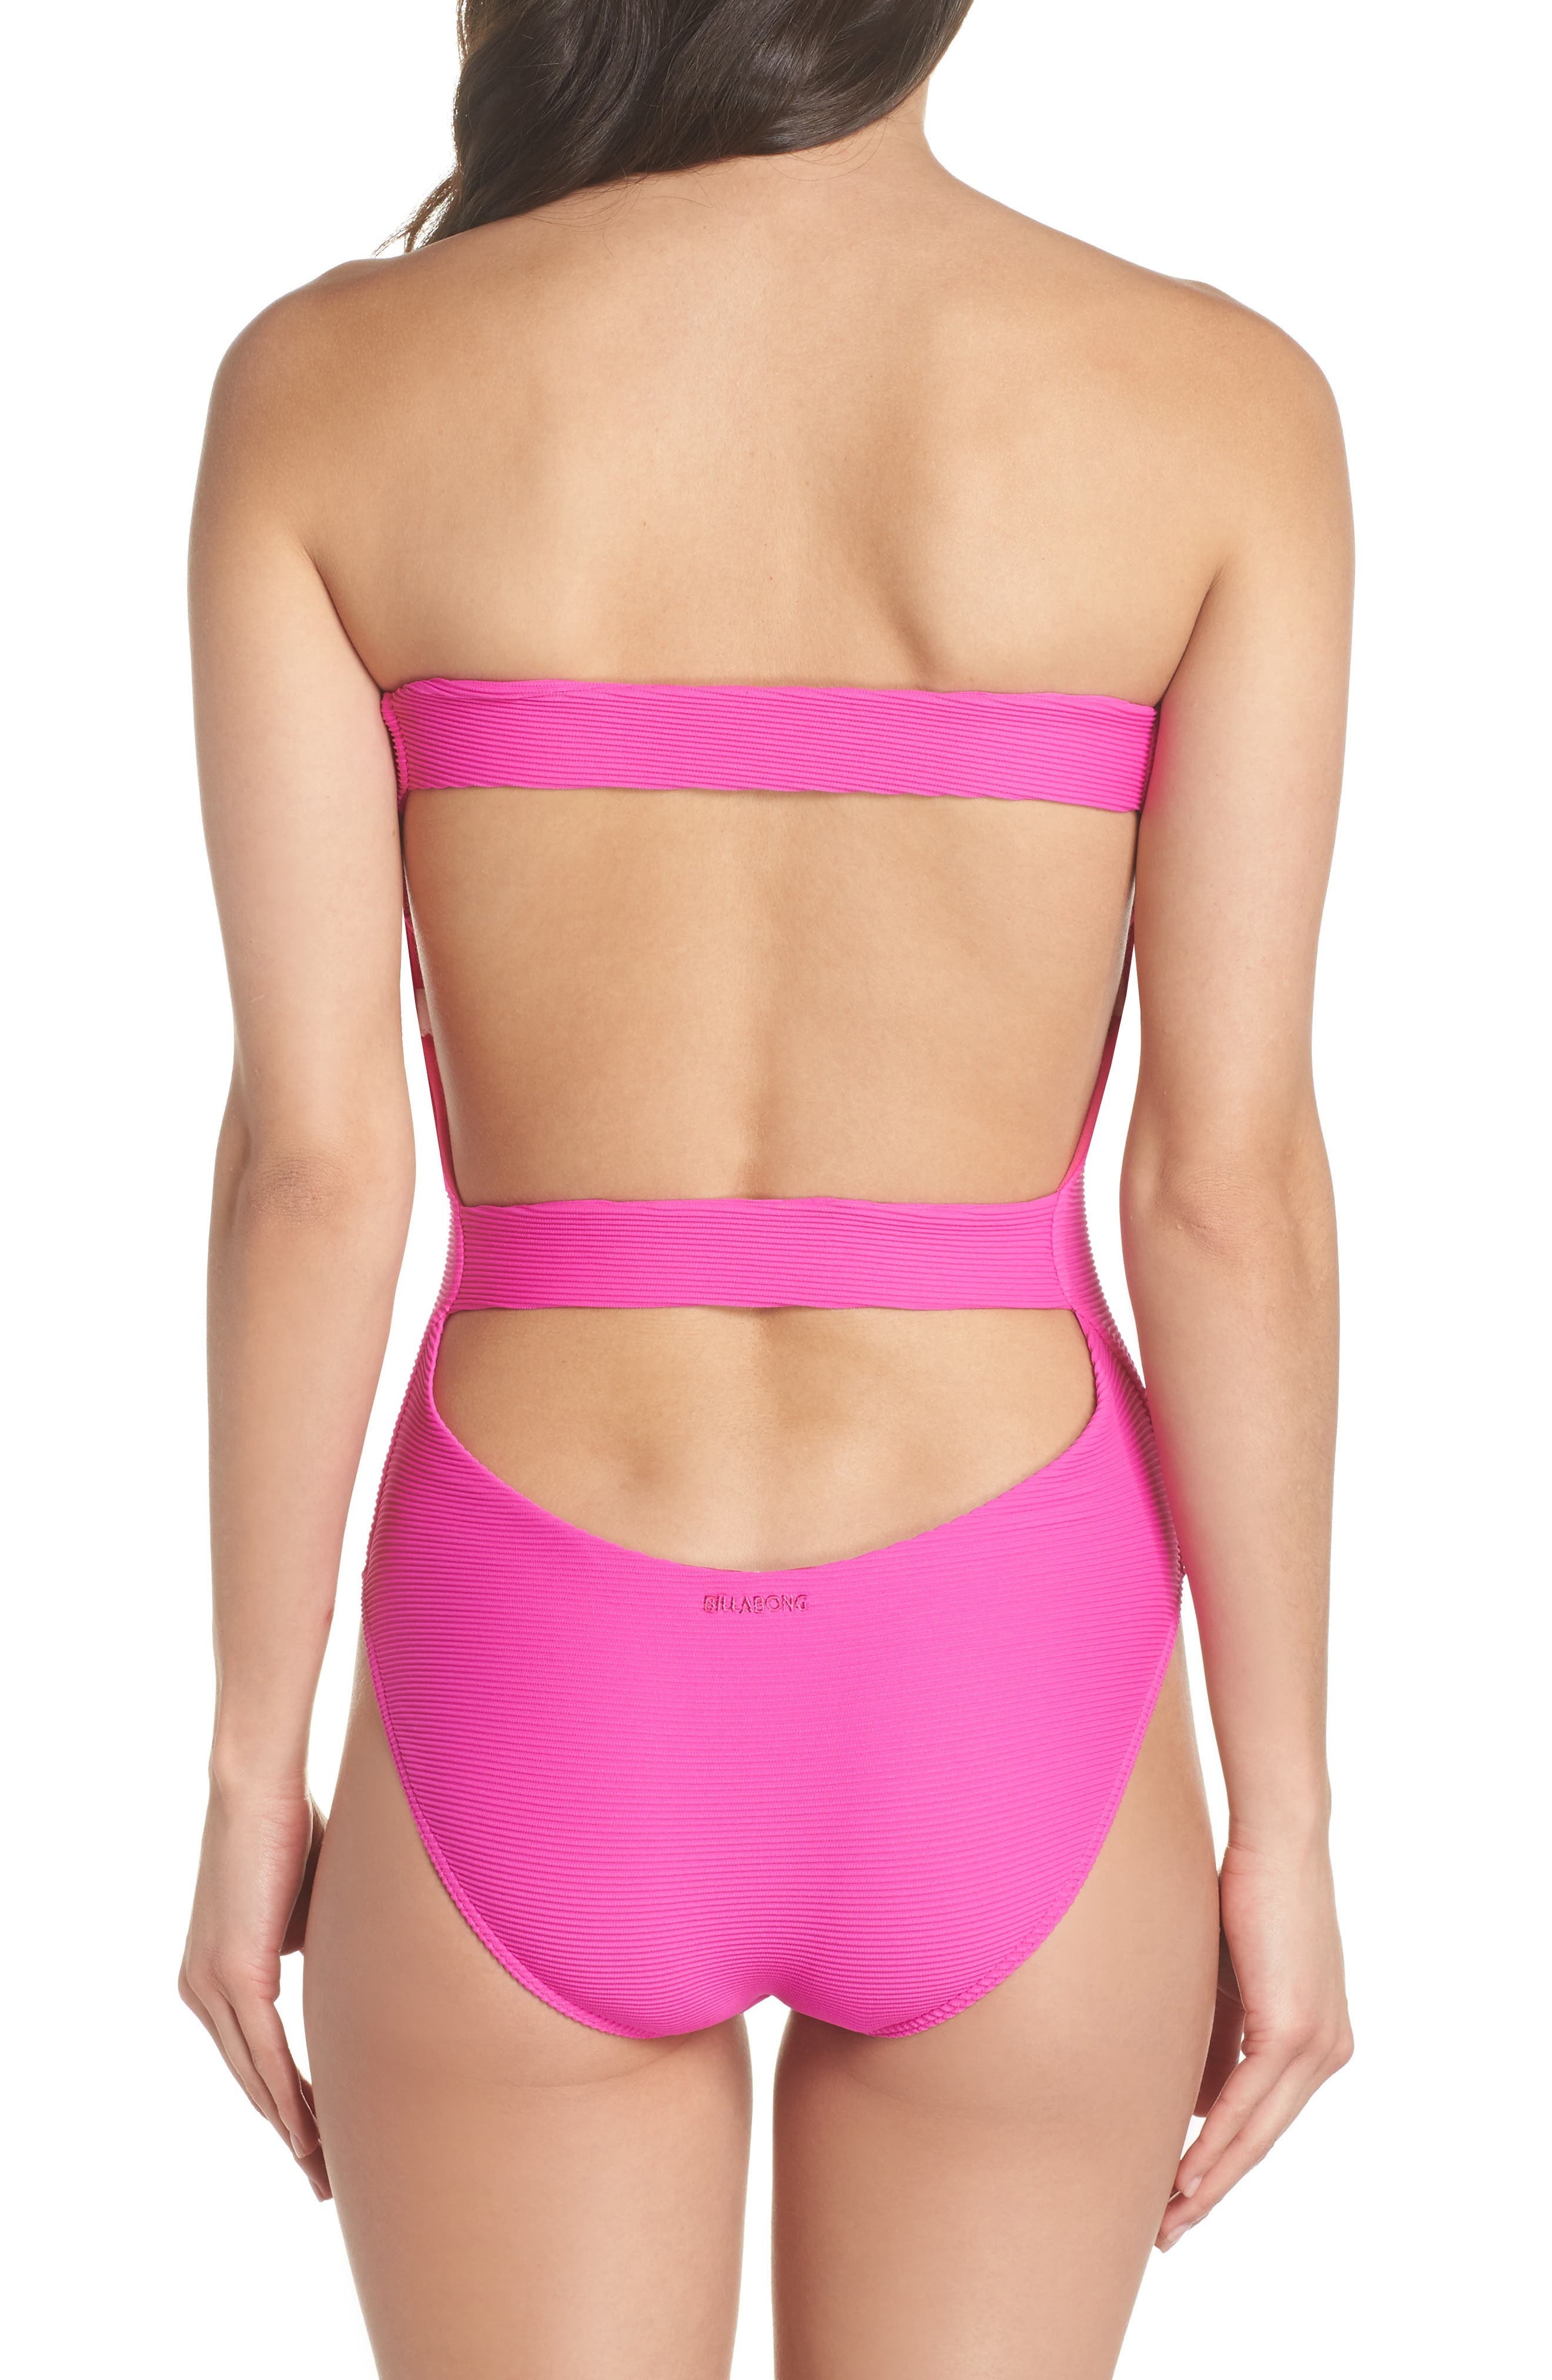 Tanlines Strapless One-Piece Swimsuit,                             Alternate thumbnail 2, color,                             685